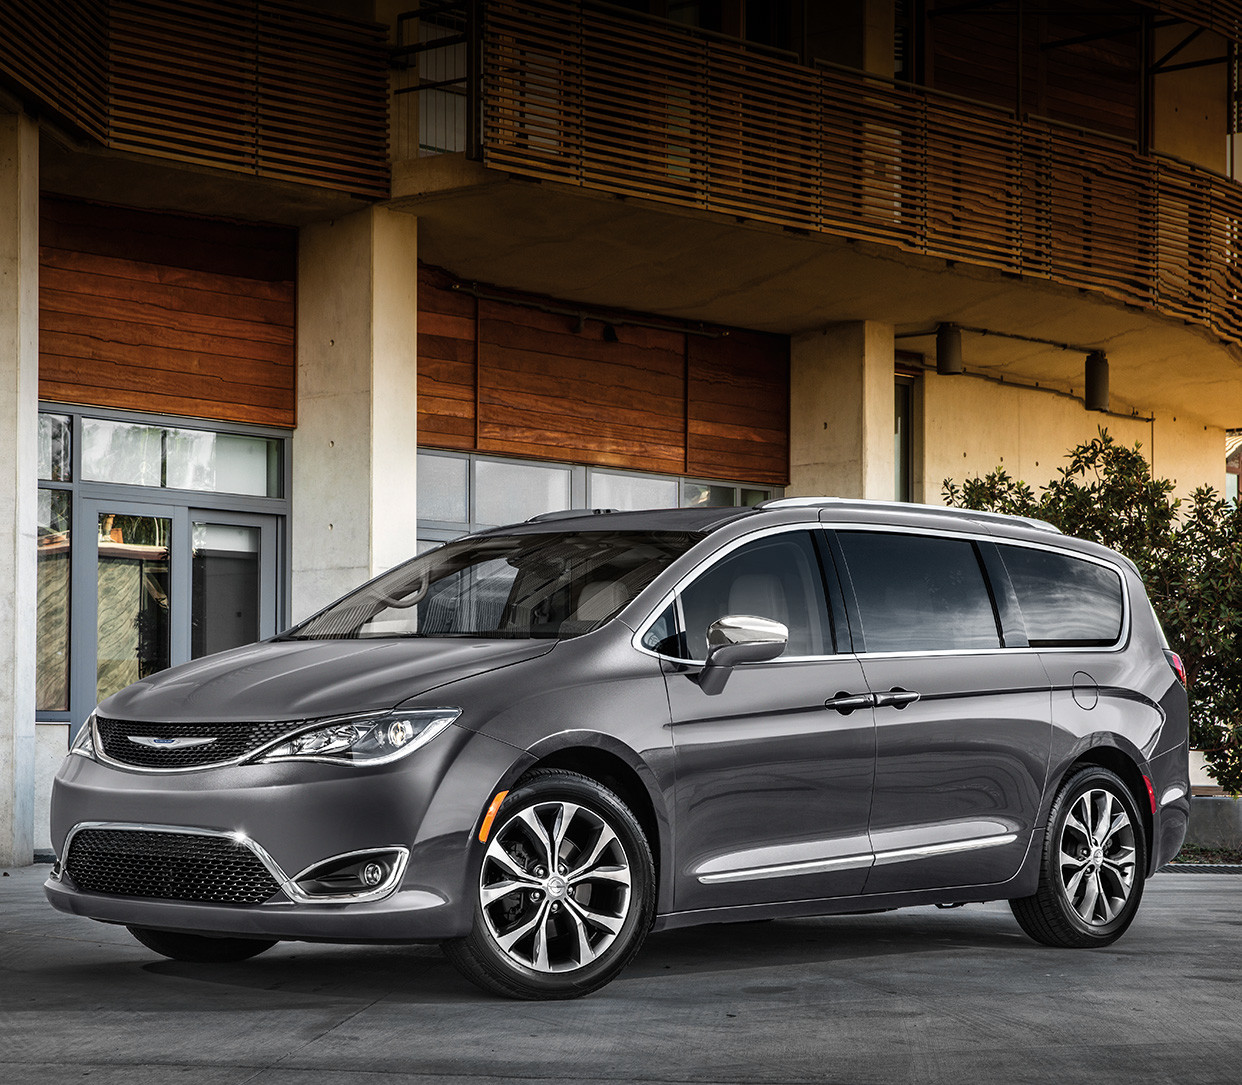 Chrysler Pacifica Limited Edition: Mini-fourgonnette Chrysler Pacifica 2019